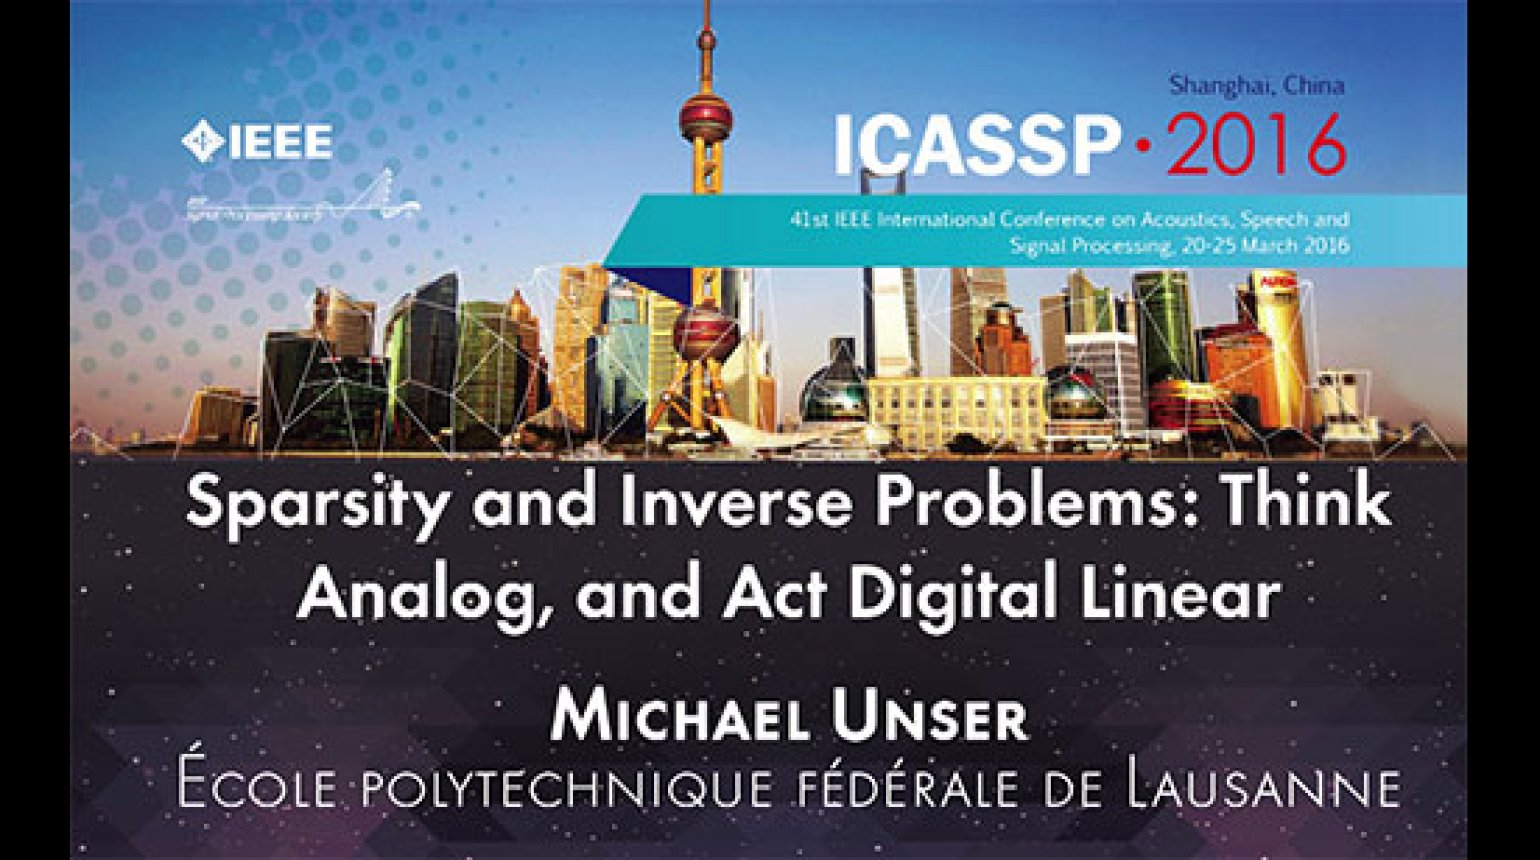 Sparsity and Inverse Problems: Think Analog, and Act Digital Linear - ICASSP 2016